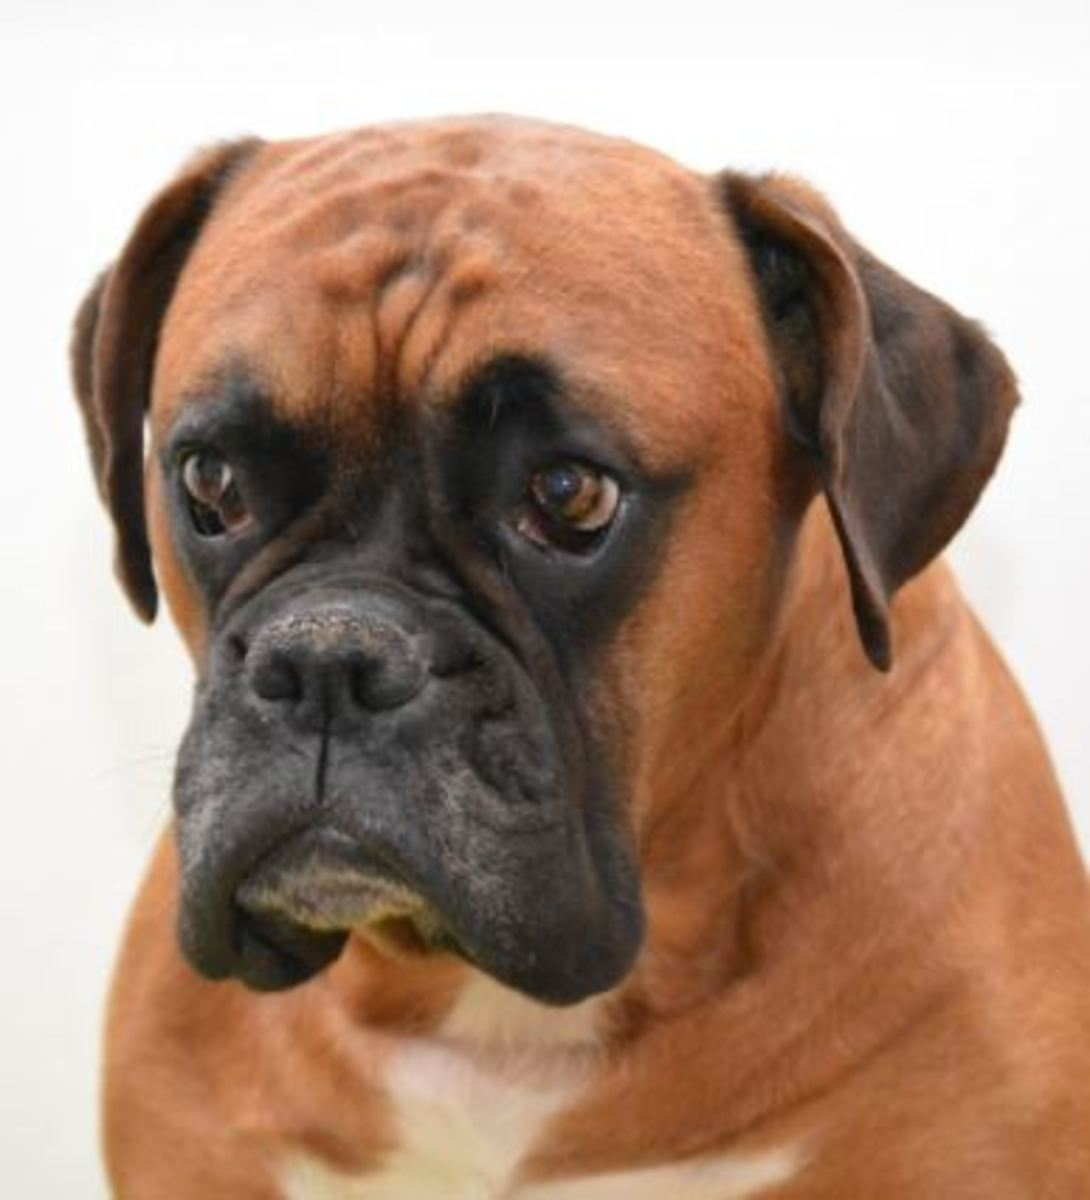 Dogs with pushed-in faces are more prone to aspiration pneumonia